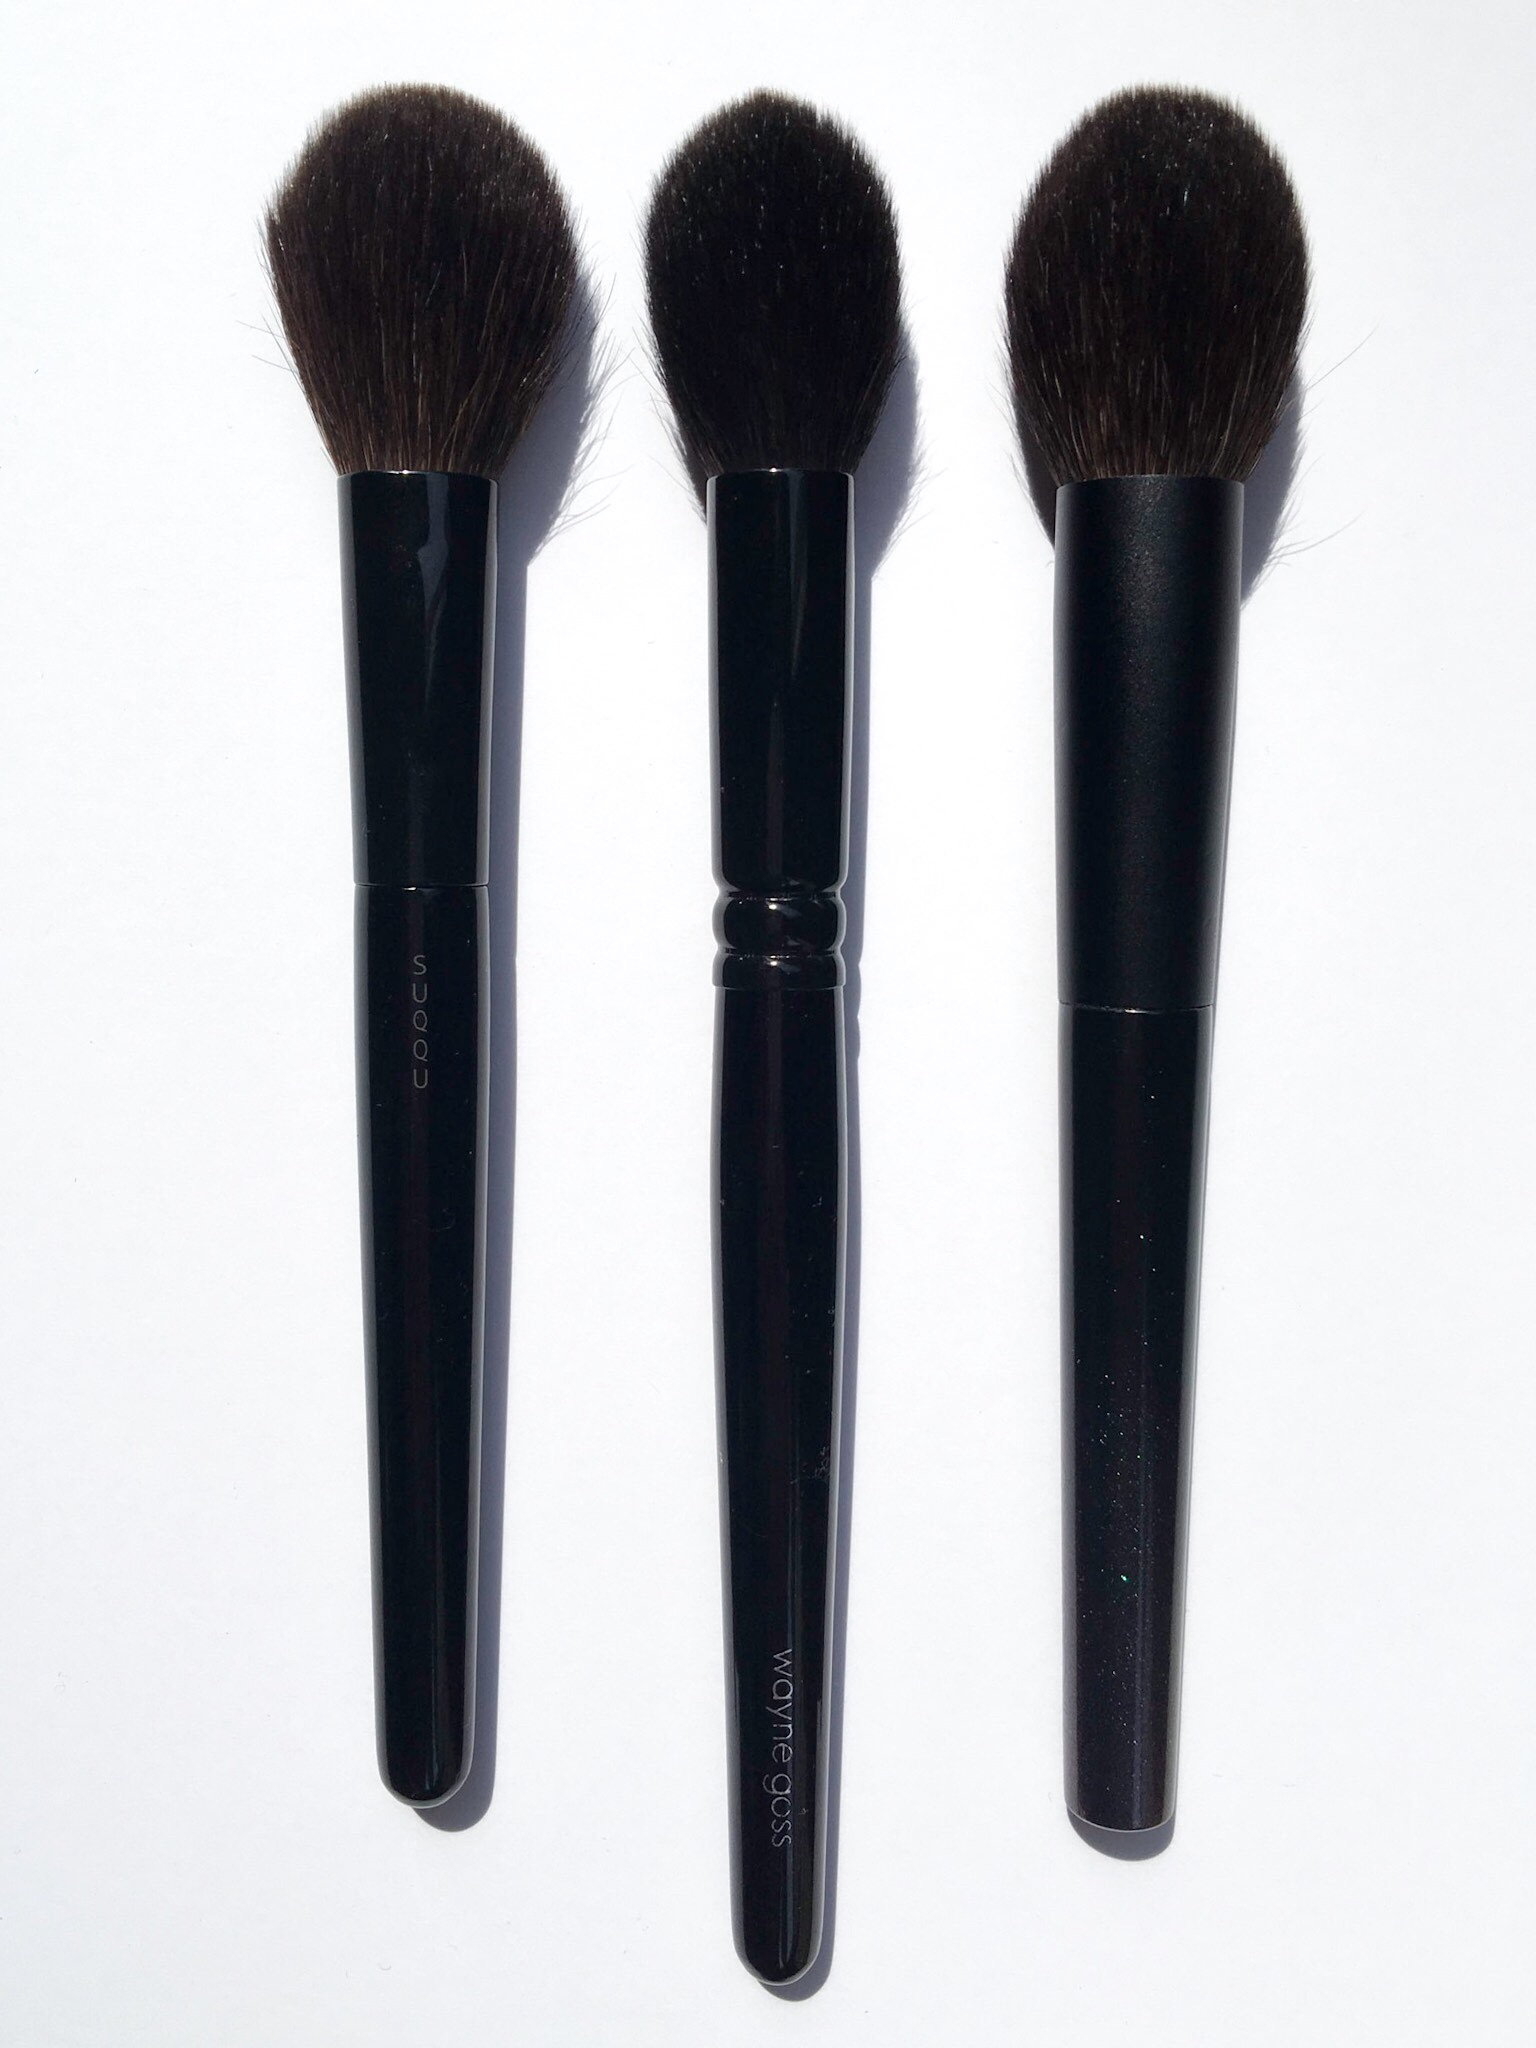 L to R:   Suqqu Cheek Brush, Wayne Goss 02, Surratt Cheek Brush - gummyvision.com